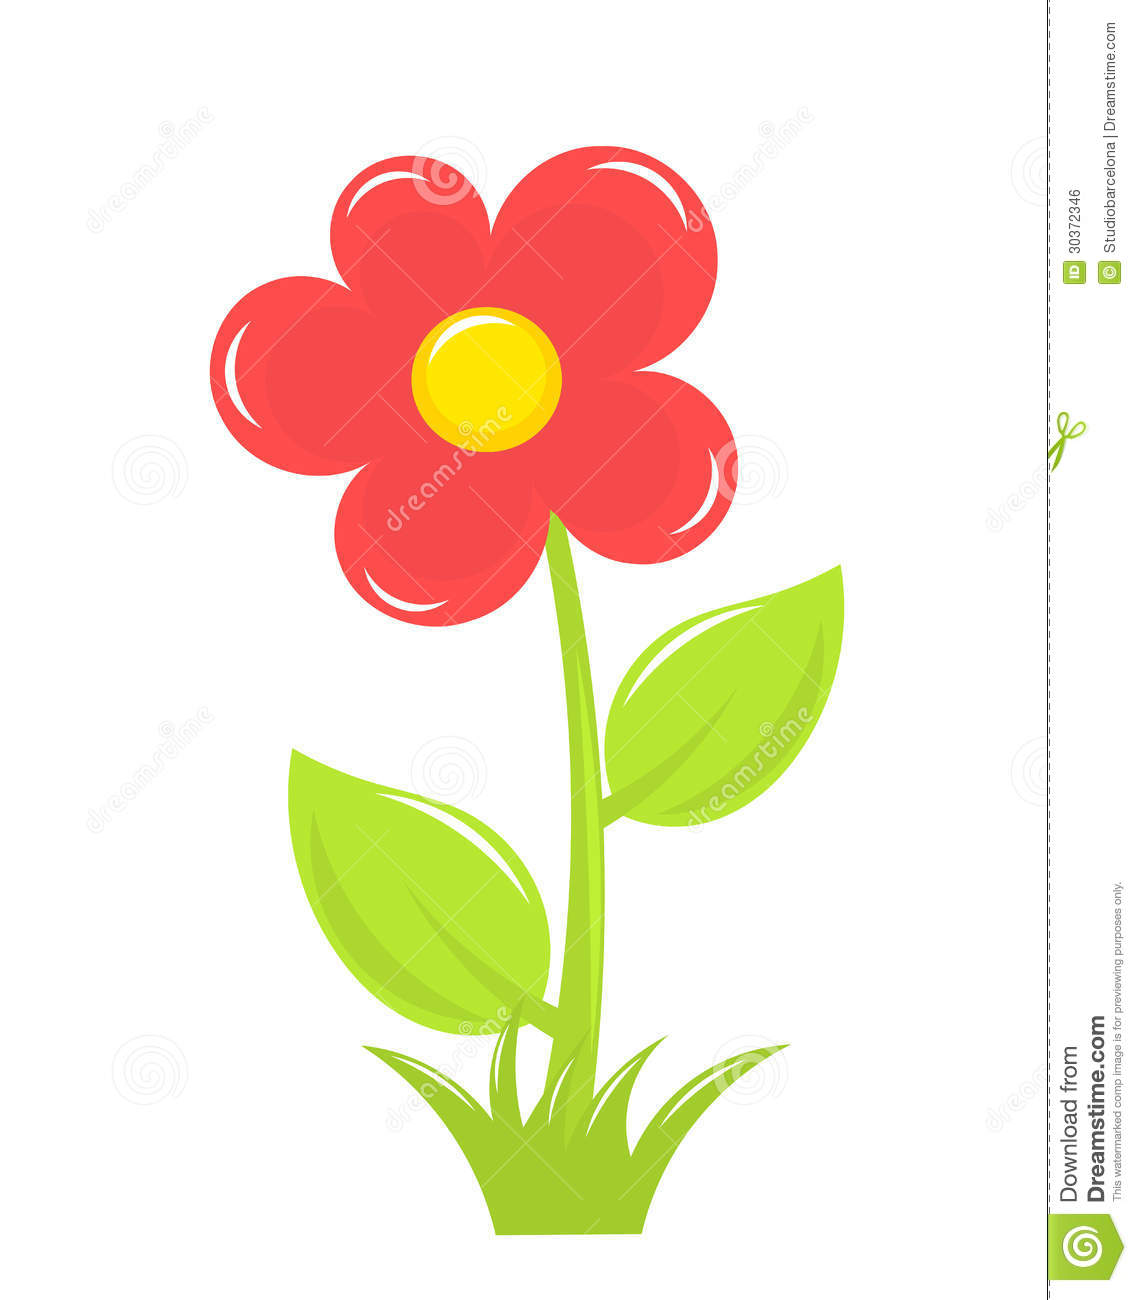 Red Flower Royalty Free Stock Image - Image: 30372346